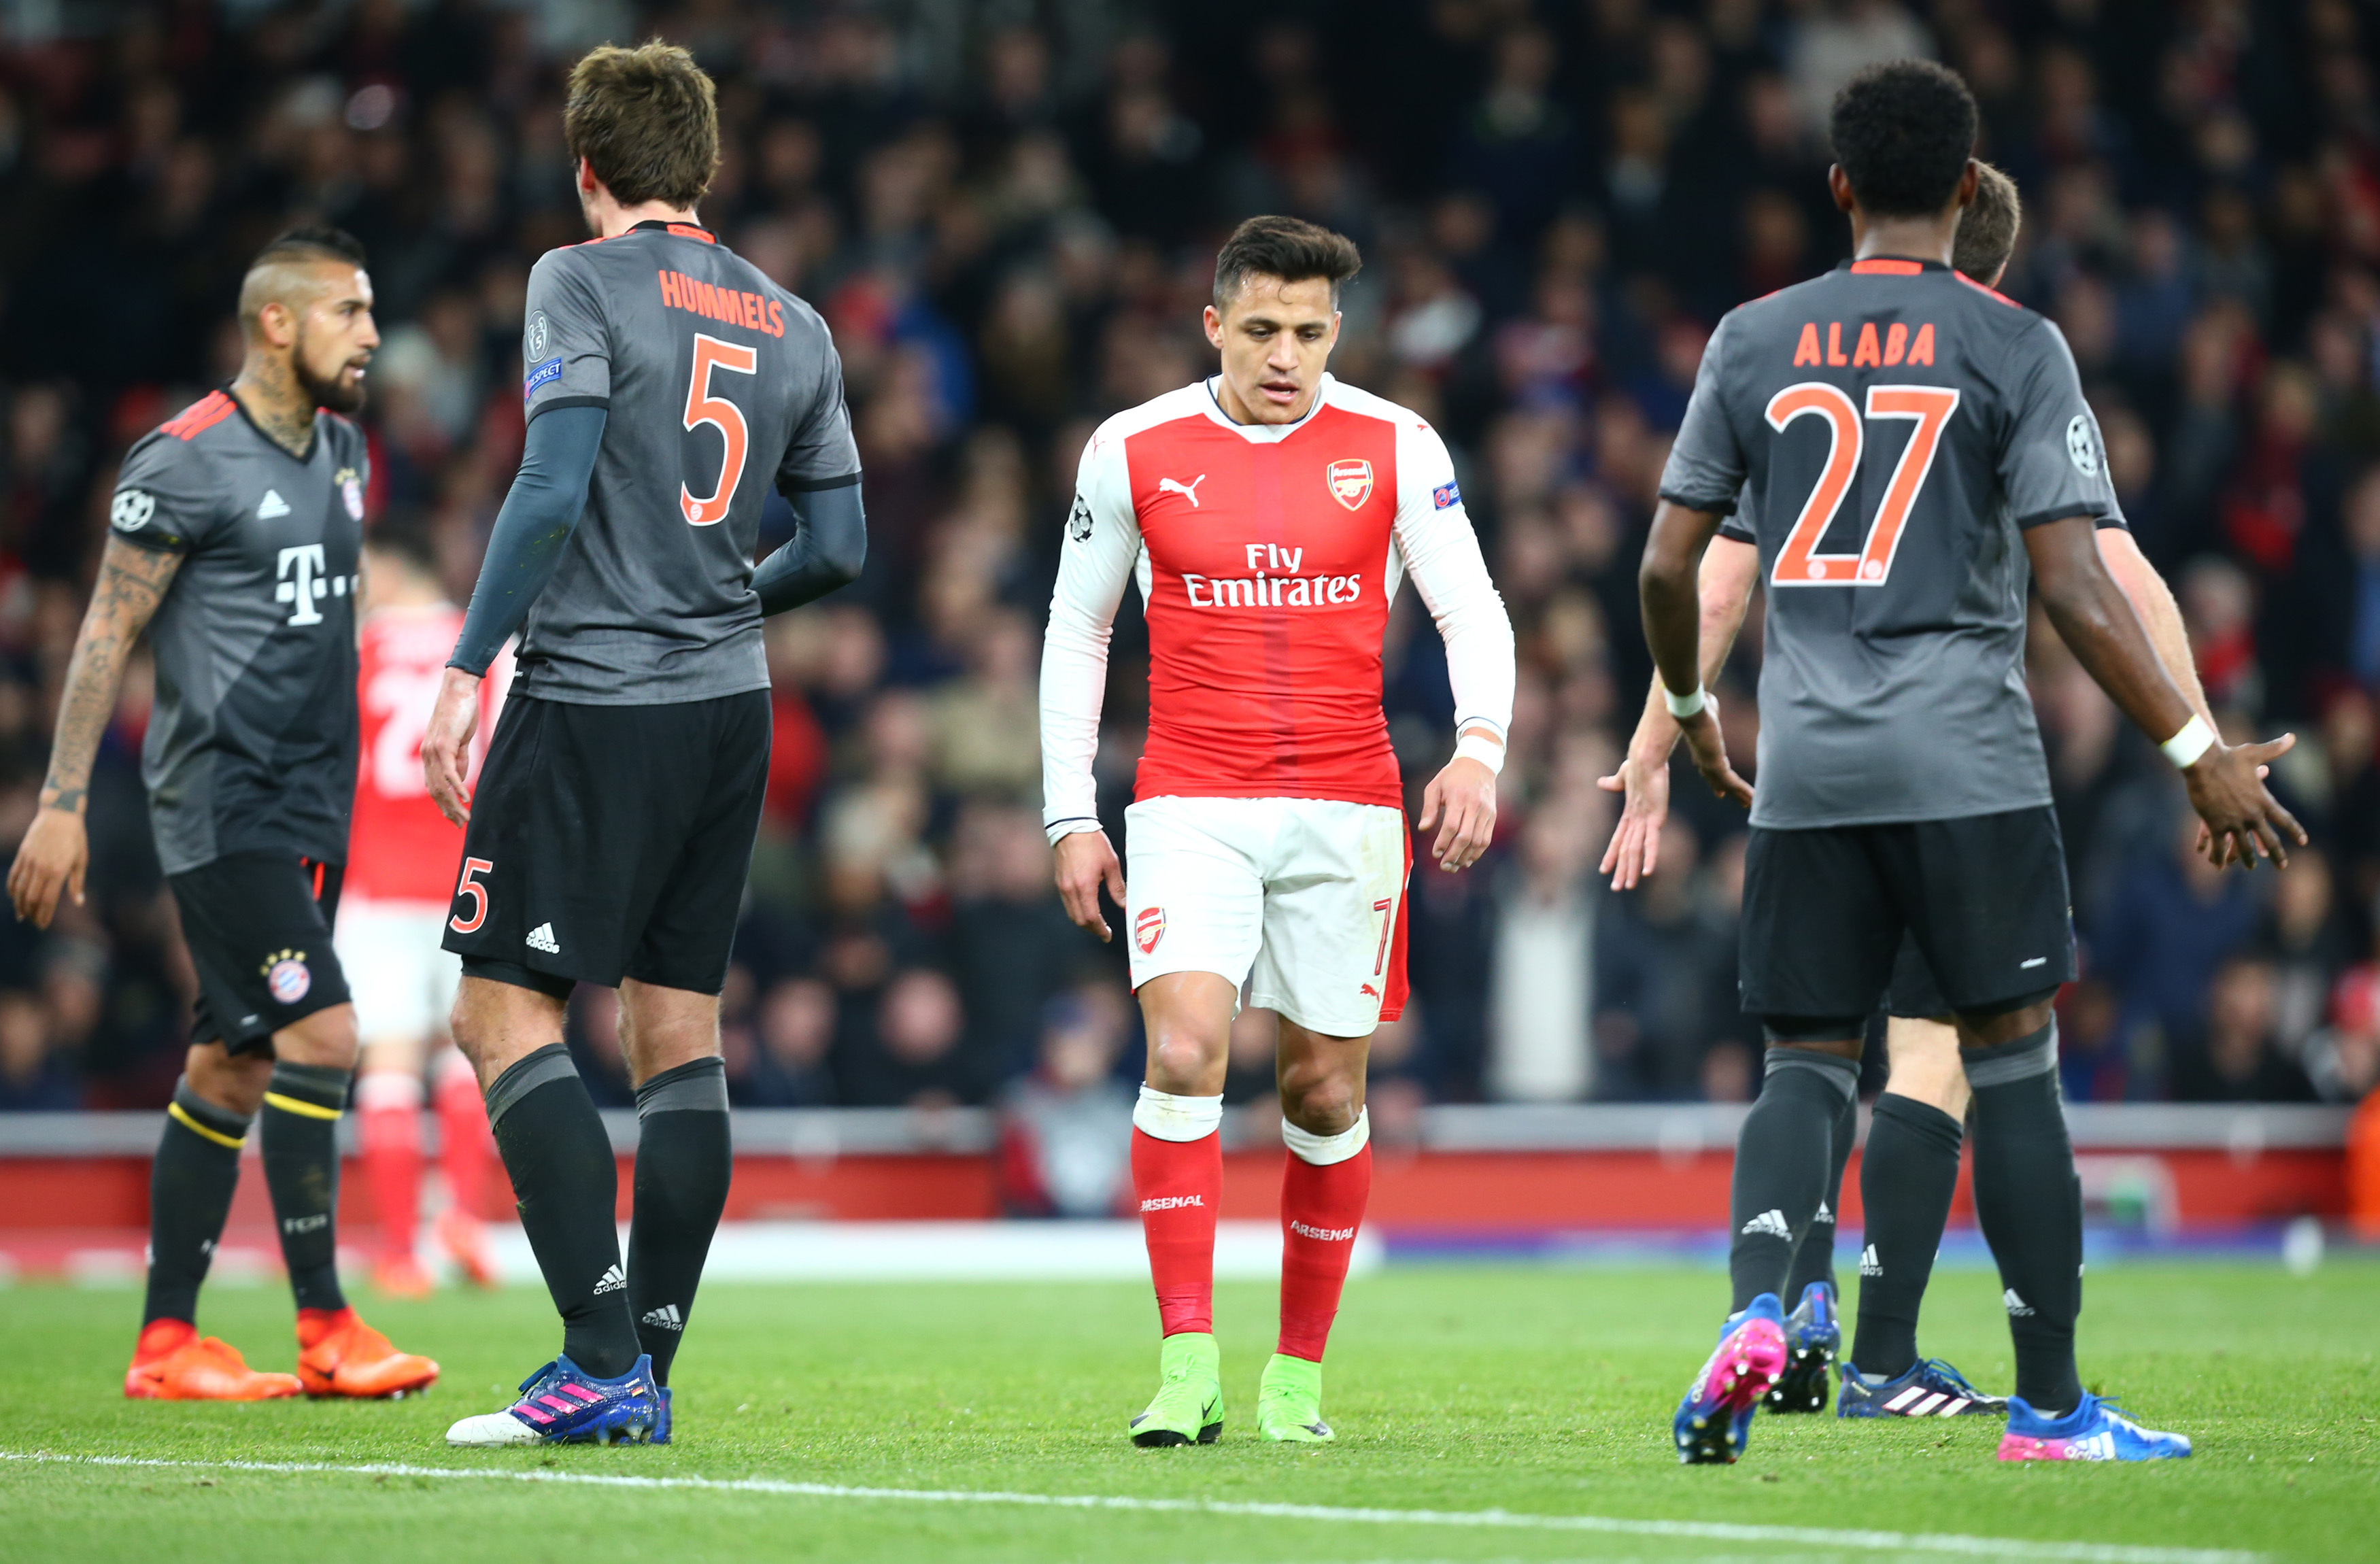 Arsenal boss Arsene Wenger: 'No offers made for Alexis Sanchez'